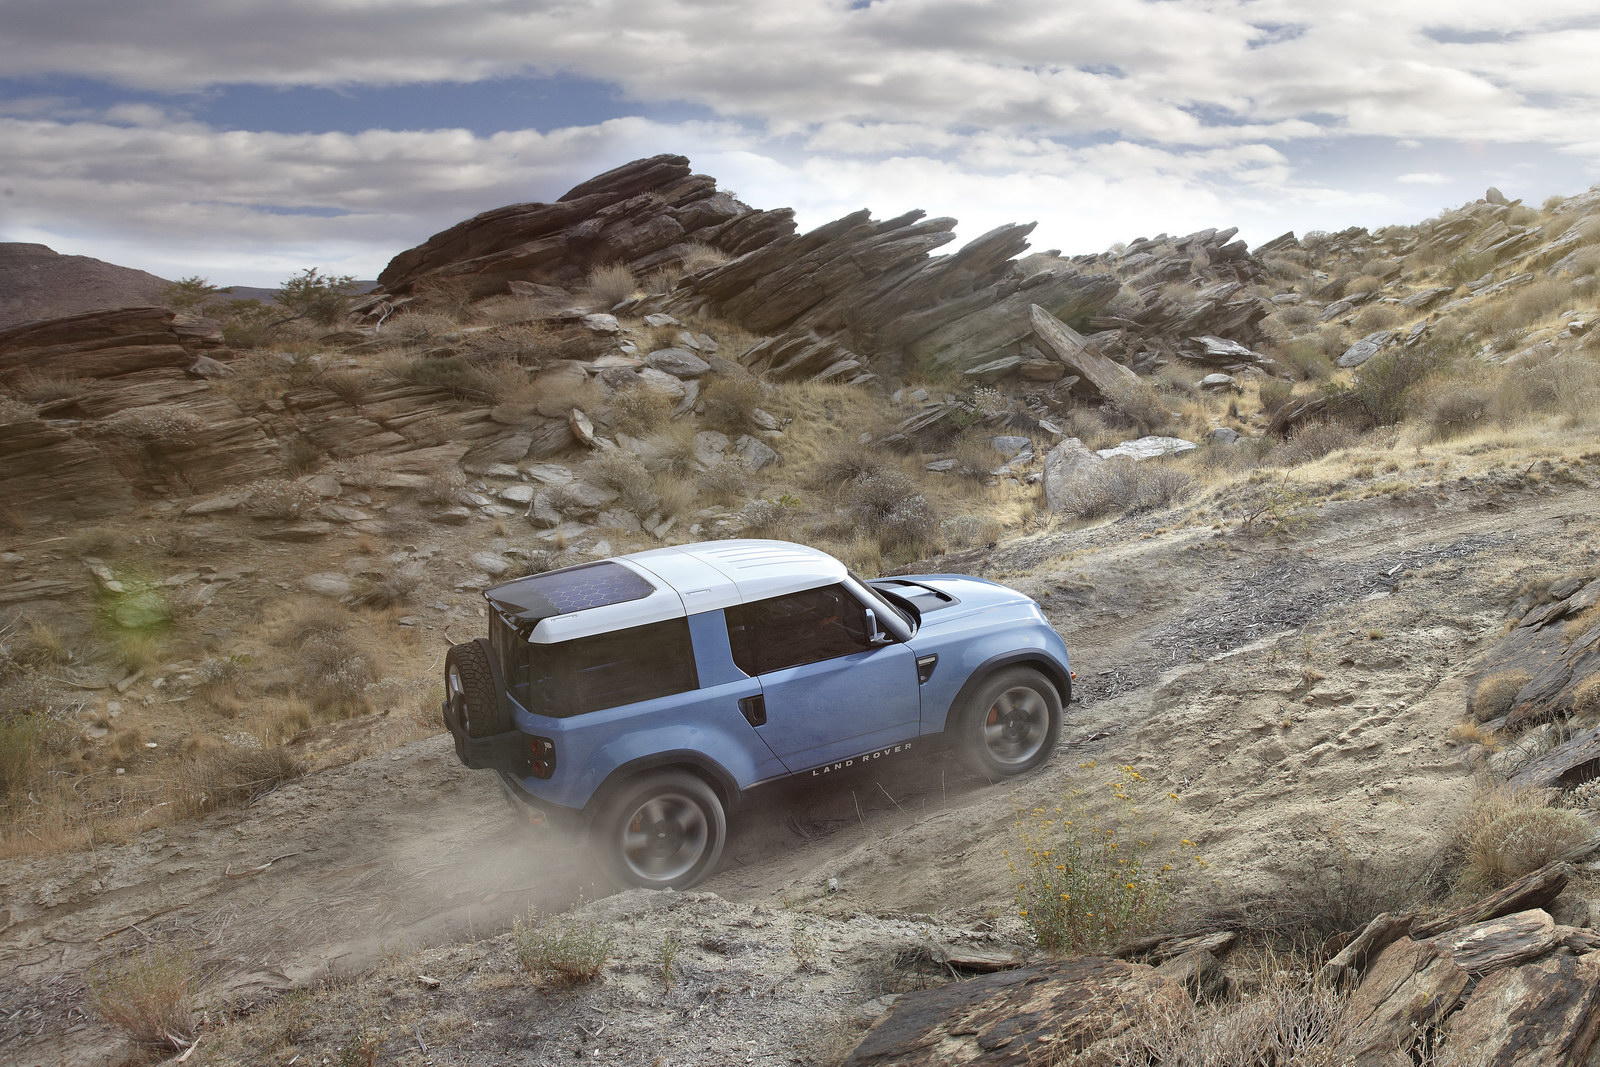 https://s1.cdn.autoevolution.com/images/news/gallery/land-rover-dc100-and-dc100-sport-ready-for-los-angeles-photo-gallery_3.jpg